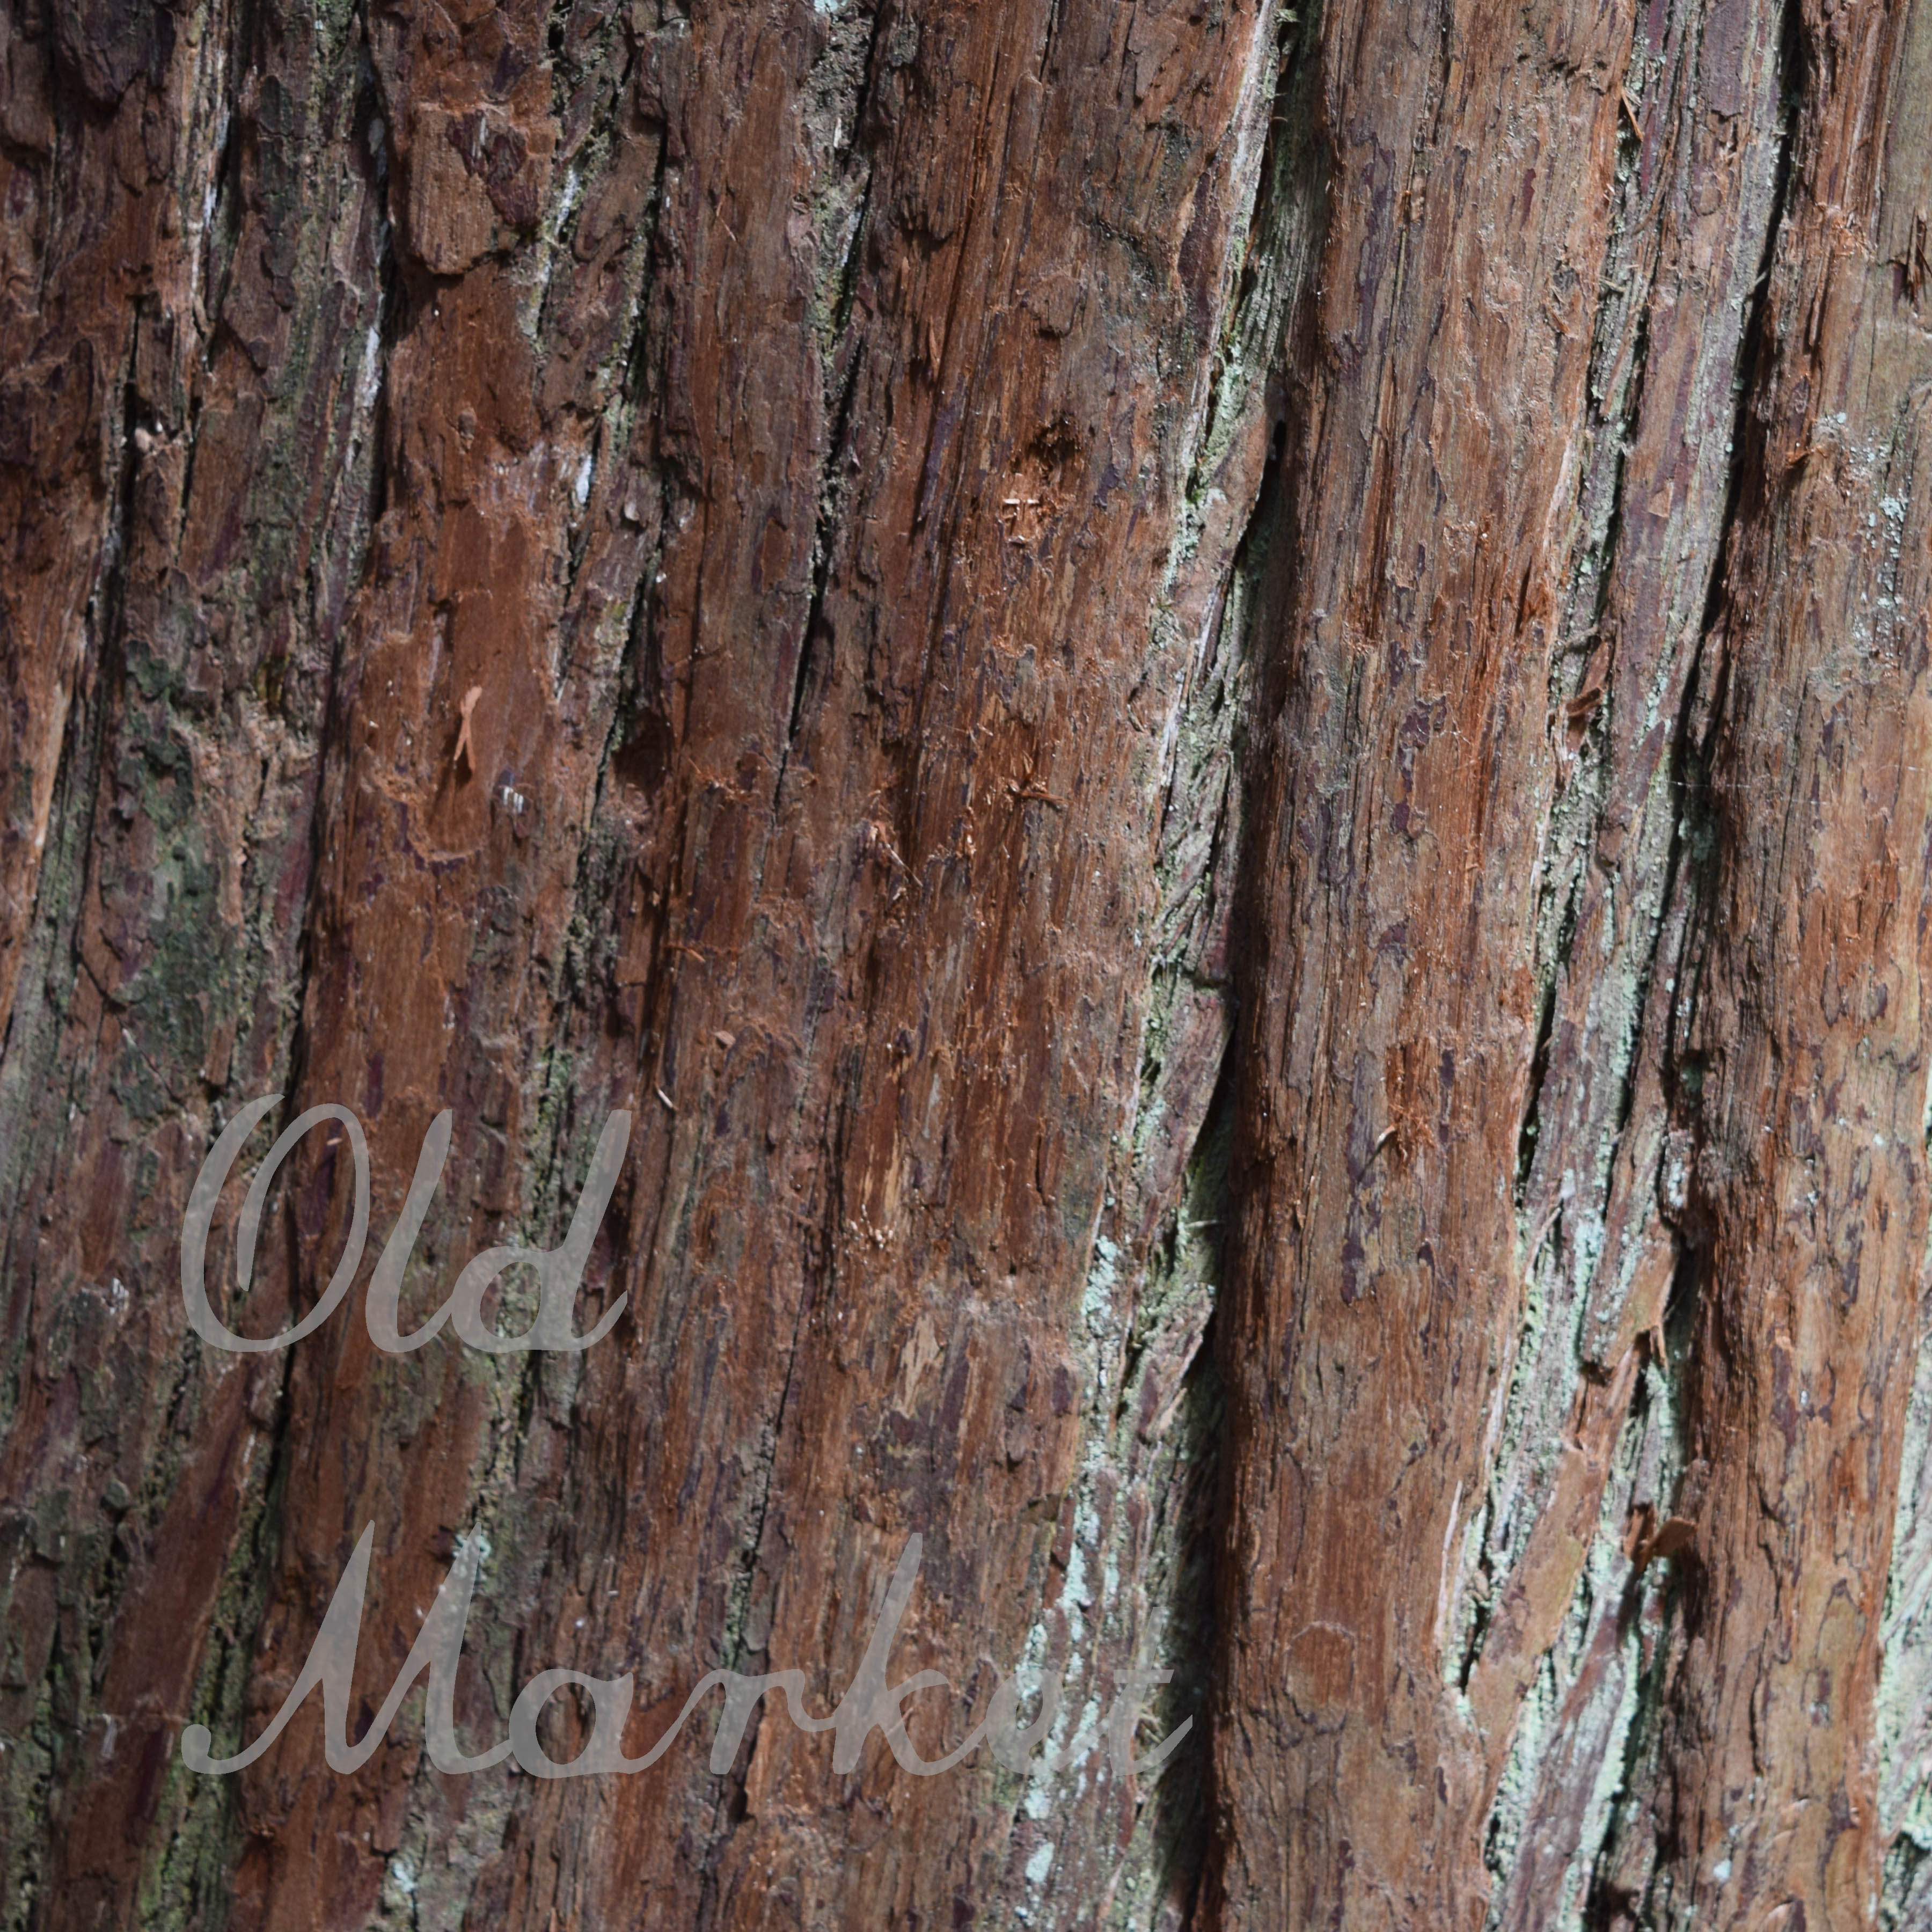 Tree Bark Textures Digital Paper Graphic By oldmarketdesigns Image 3